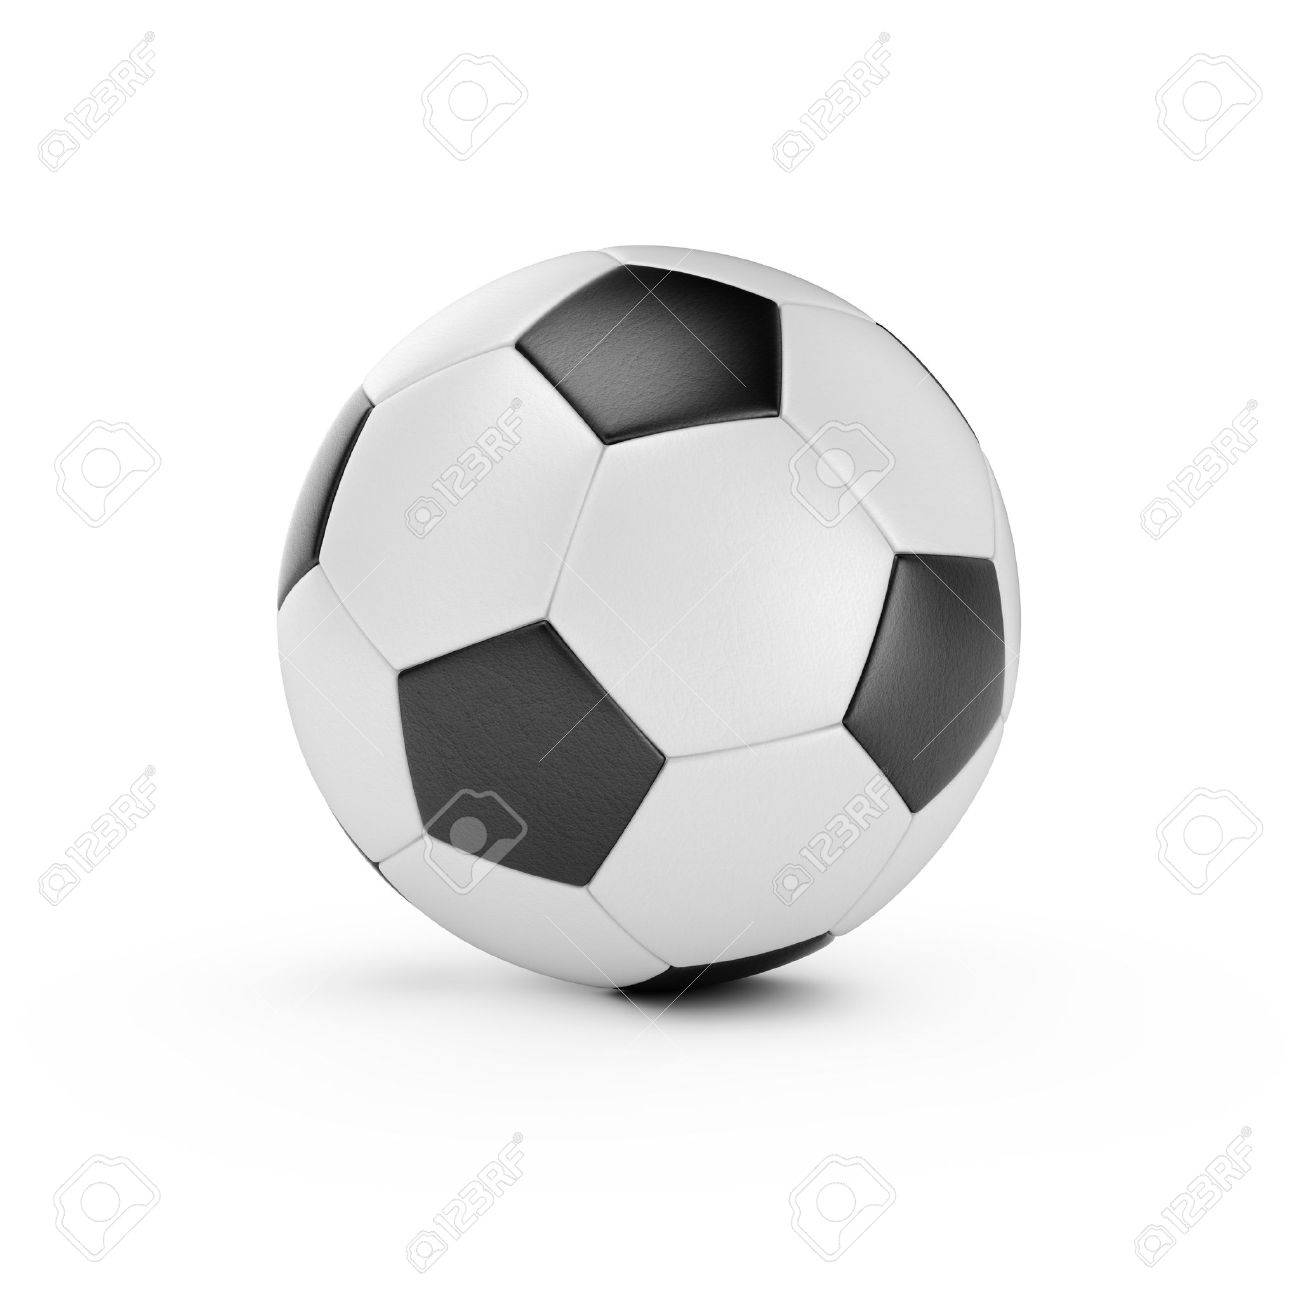 3d render of soccer ball isolated on white background Stock Photo - 14021458